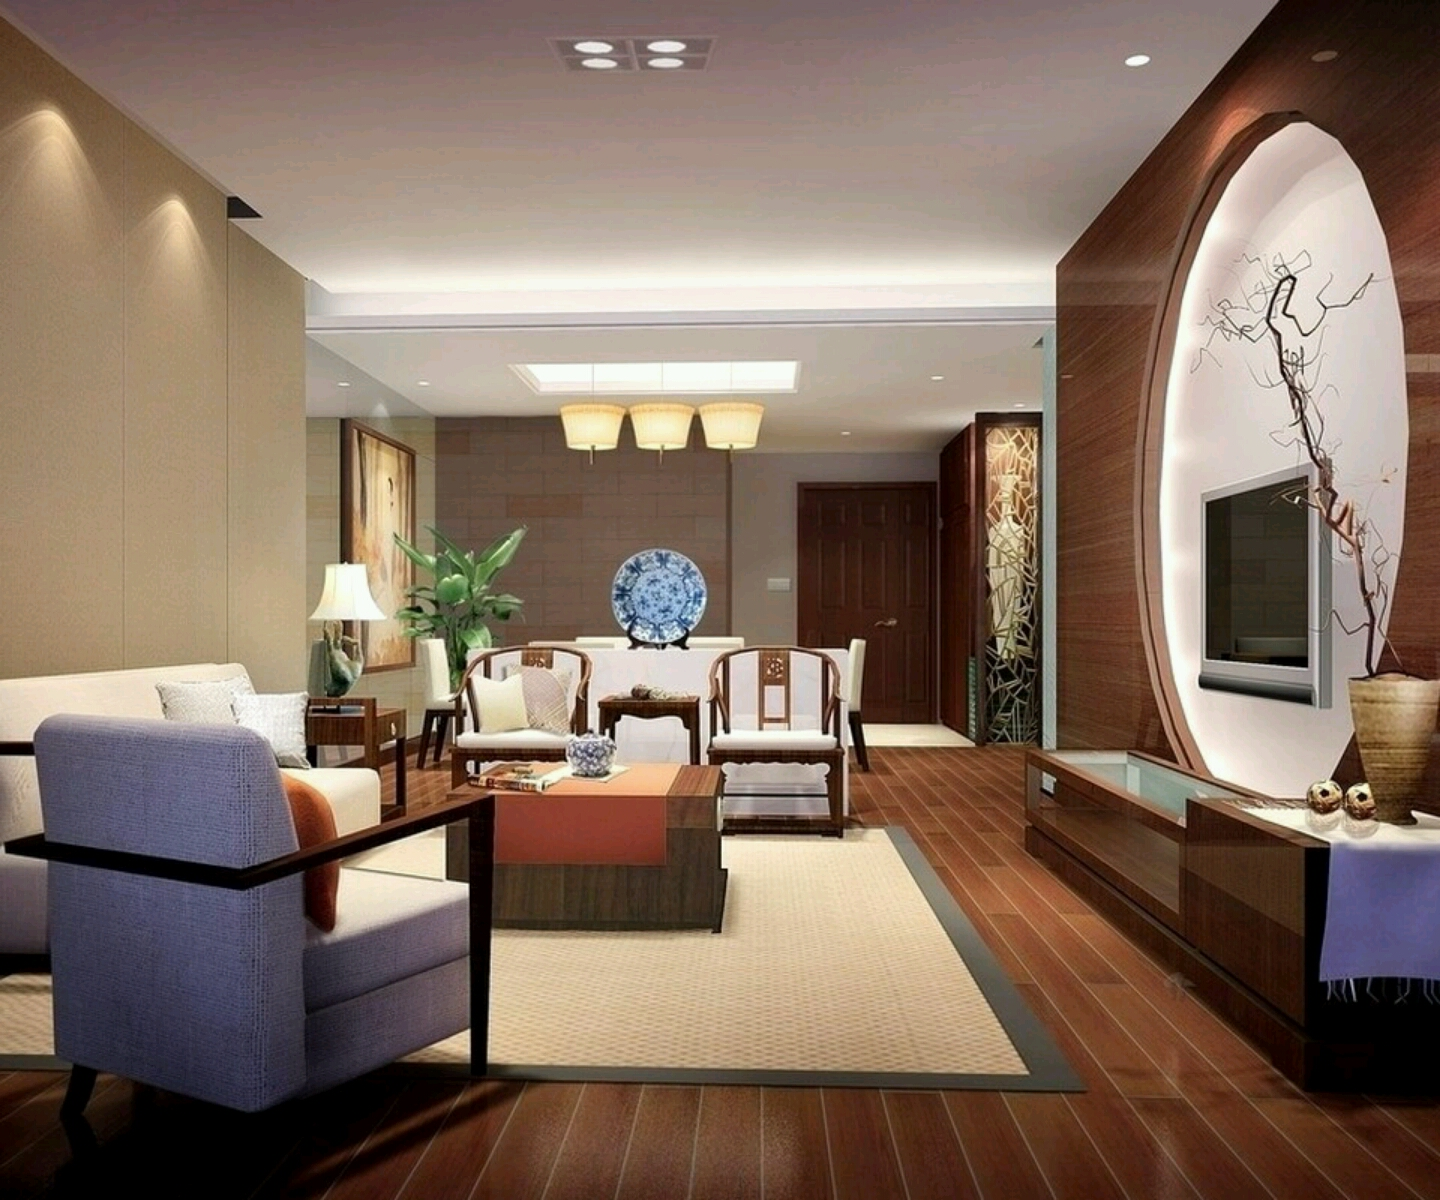 Luxury homes interior decoration living room designs ideas for Living room interior design